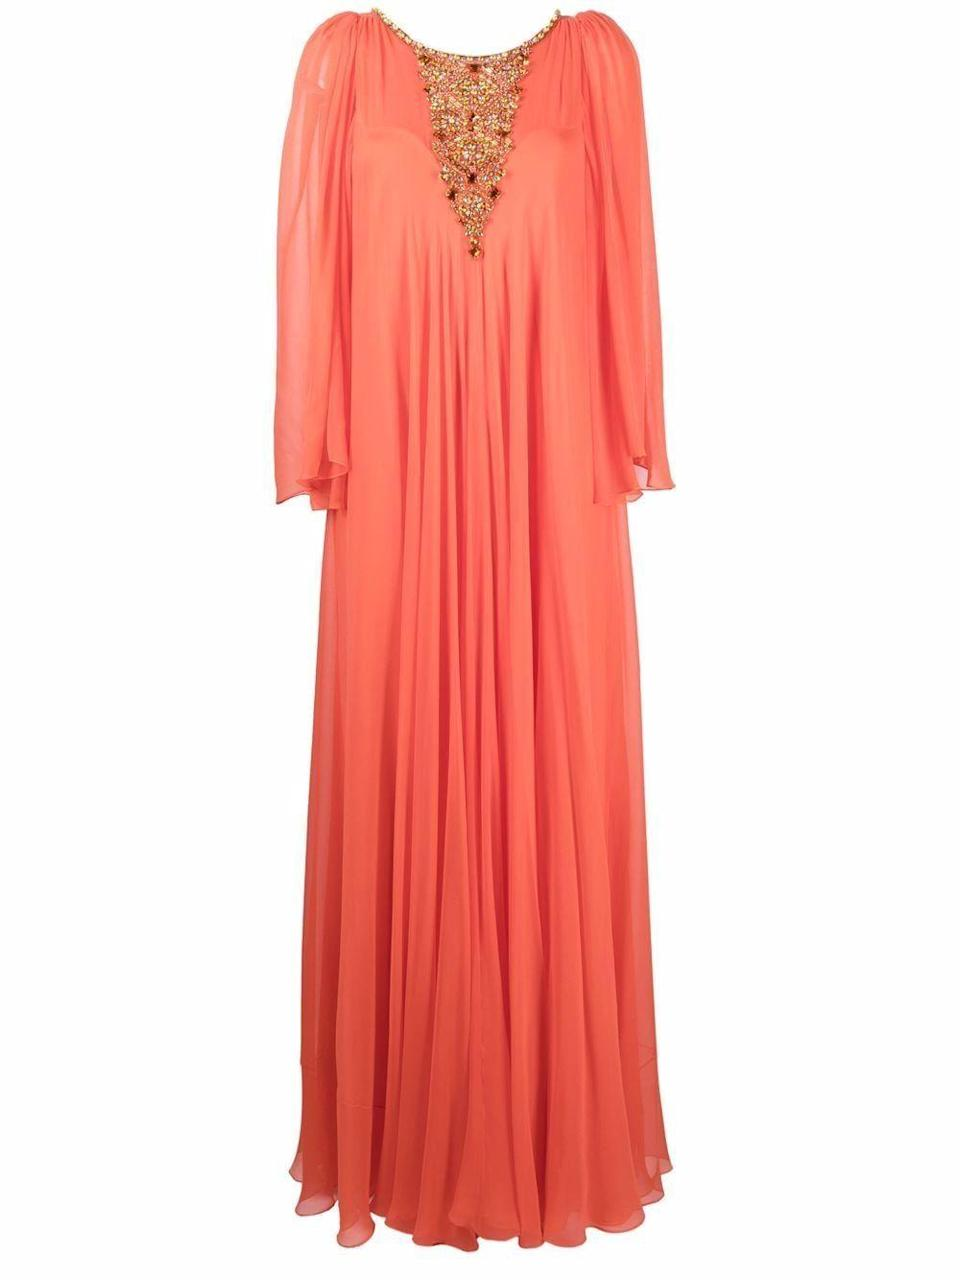 """<p><strong>Jenny Packham</strong></p><p>farfetch.com</p><p><strong>$5396.00</strong></p><p><a href=""""https://go.redirectingat.com?id=74968X1596630&url=https%3A%2F%2Fwww.farfetch.com%2Fshopping%2Fwomen%2Fjenny-packham-crystal-embellished-pleated-gown-item-16843031.aspx&sref=https%3A%2F%2Fwww.harpersbazaar.com%2Fwedding%2Fbridal-fashion%2Fg36750122%2Fbest-mother-of-the-groom-dresses%2F"""" rel=""""nofollow noopener"""" target=""""_blank"""" data-ylk=""""slk:SHOP NOW"""" class=""""link rapid-noclick-resp"""">SHOP NOW</a></p><p>Black tie affairs (traditionally) mean floor length looks with luxe accessories. For the mother of the groom, opt for a gown that has built-in accessories, like embellishments at the neckline. Then, just add dainty earrings and effortless hair and makeup.</p>"""